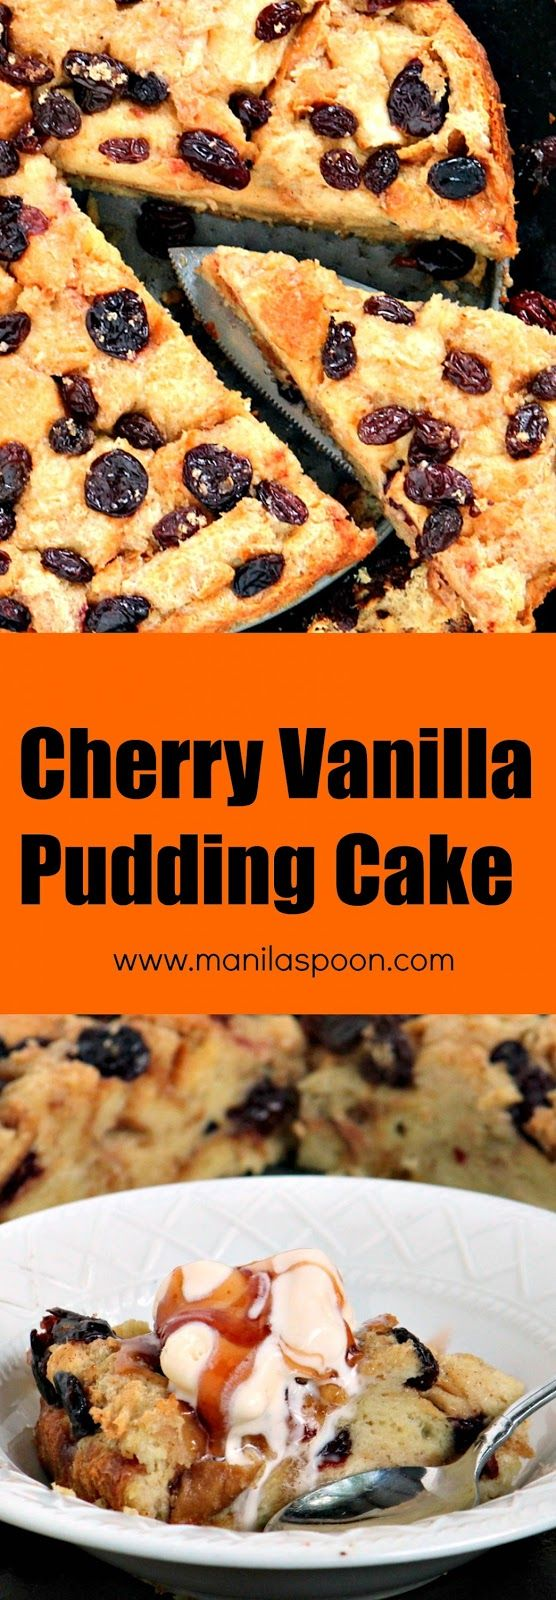 A cake for breakfast!!! This Cherry Vanilla Pudding Cake will make your taste buds sing! You can replace the cherries with other fruits in season. | manilaspoon.com